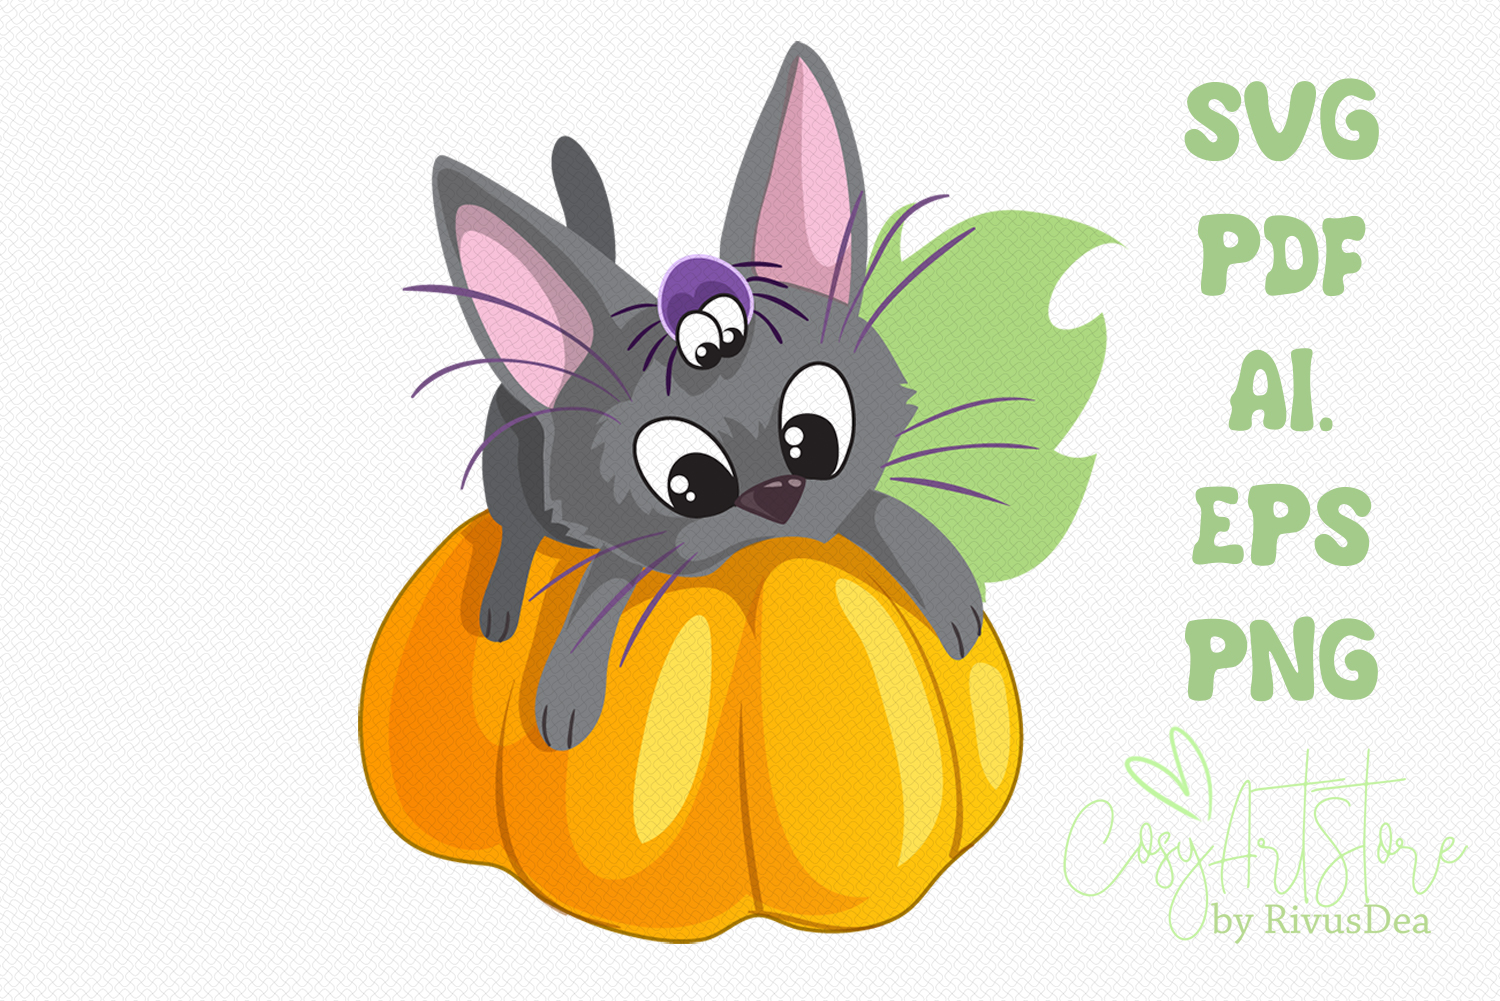 Black kitten on Pumpkin SVG download, Cute cat PNG example image 1